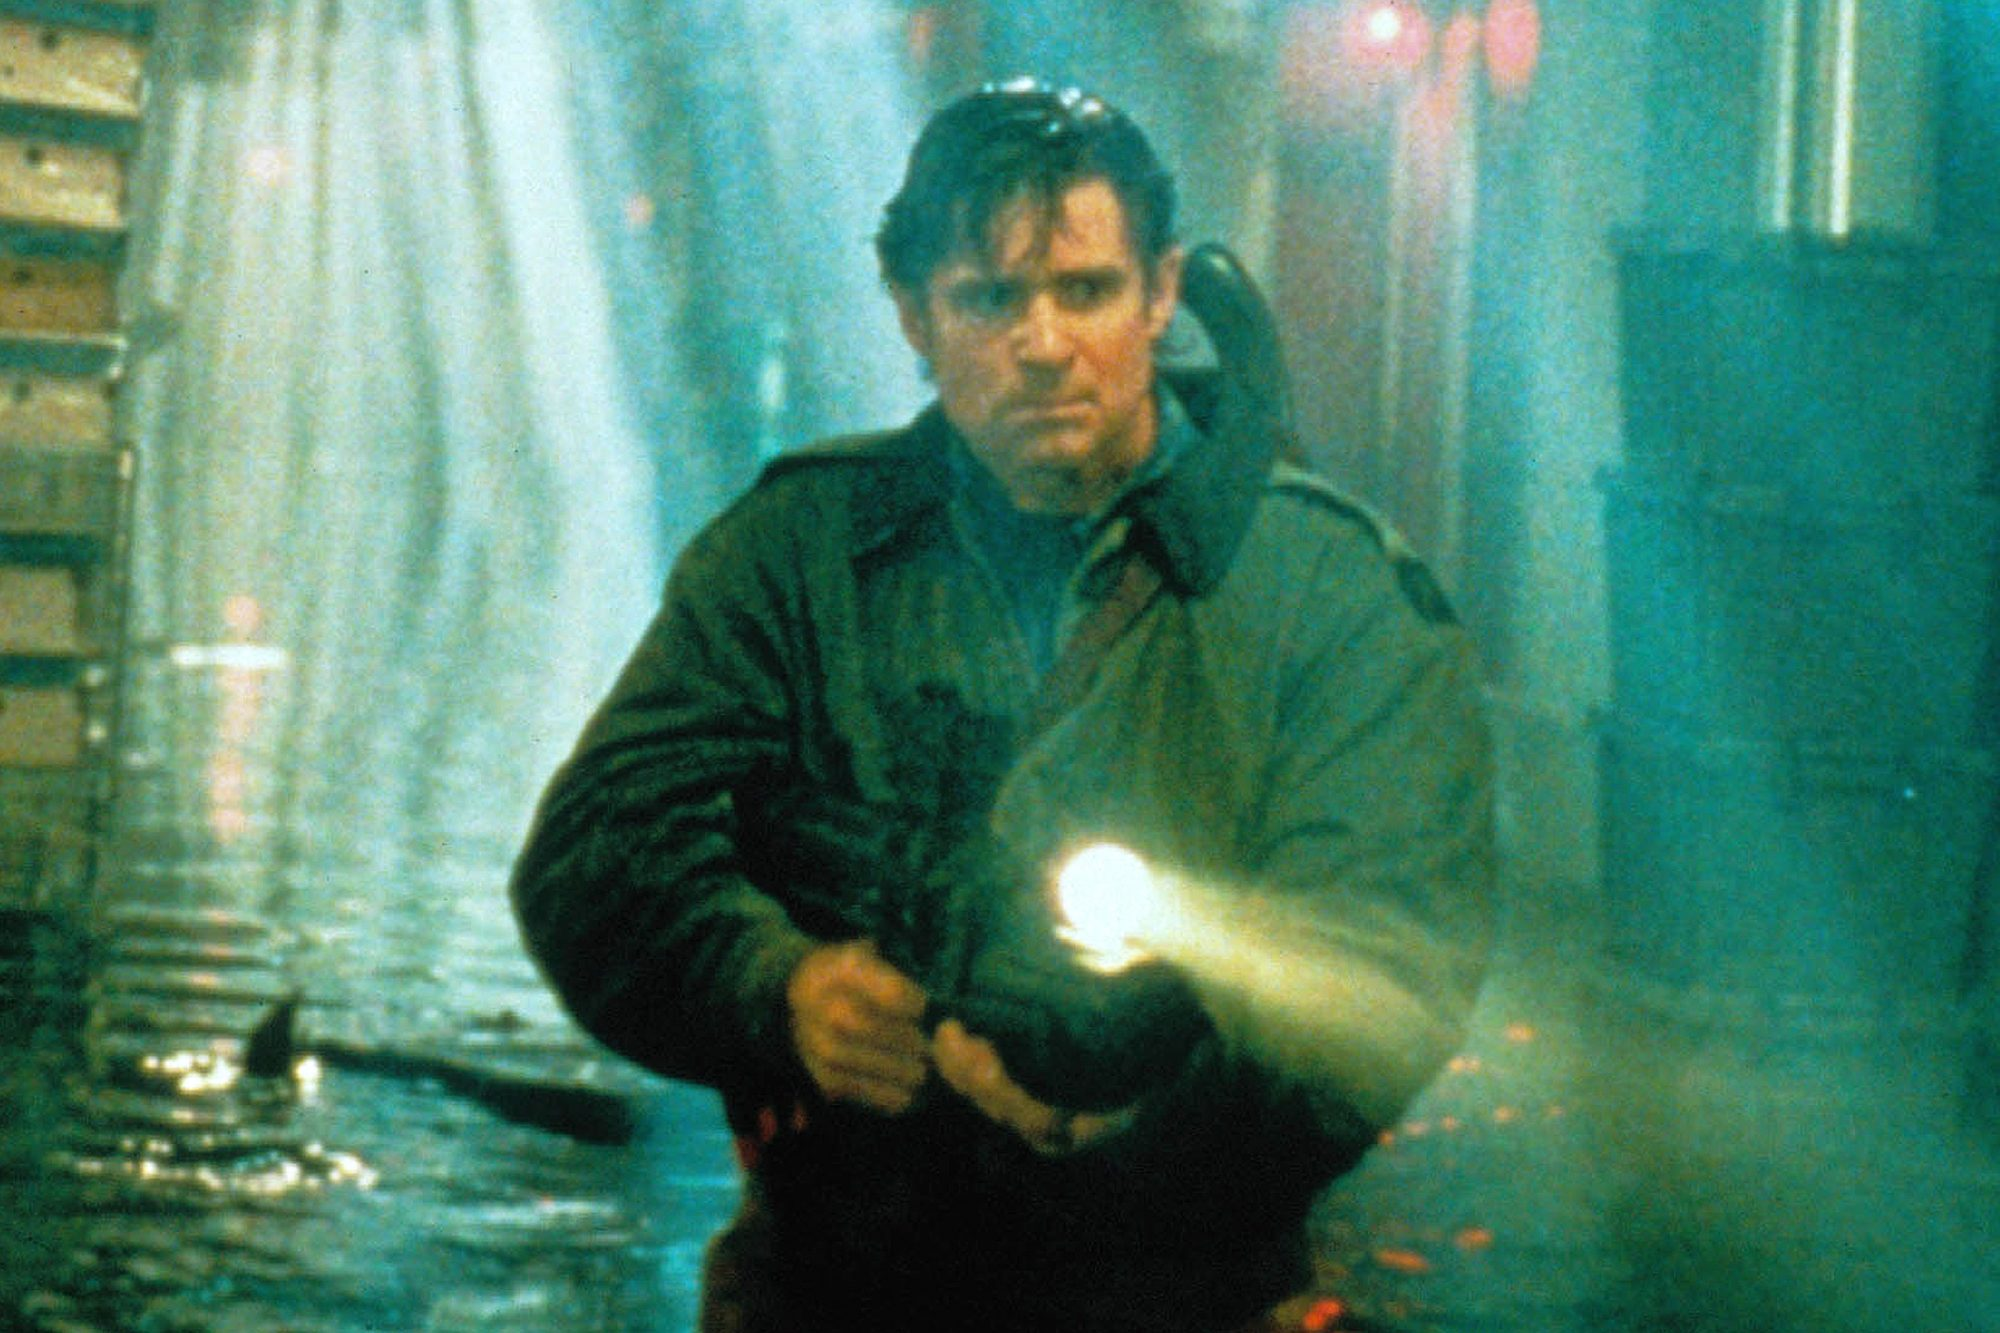 image 5 25 Things You Didn't Know About 1998's 'King Kong Prequel' Deep Rising